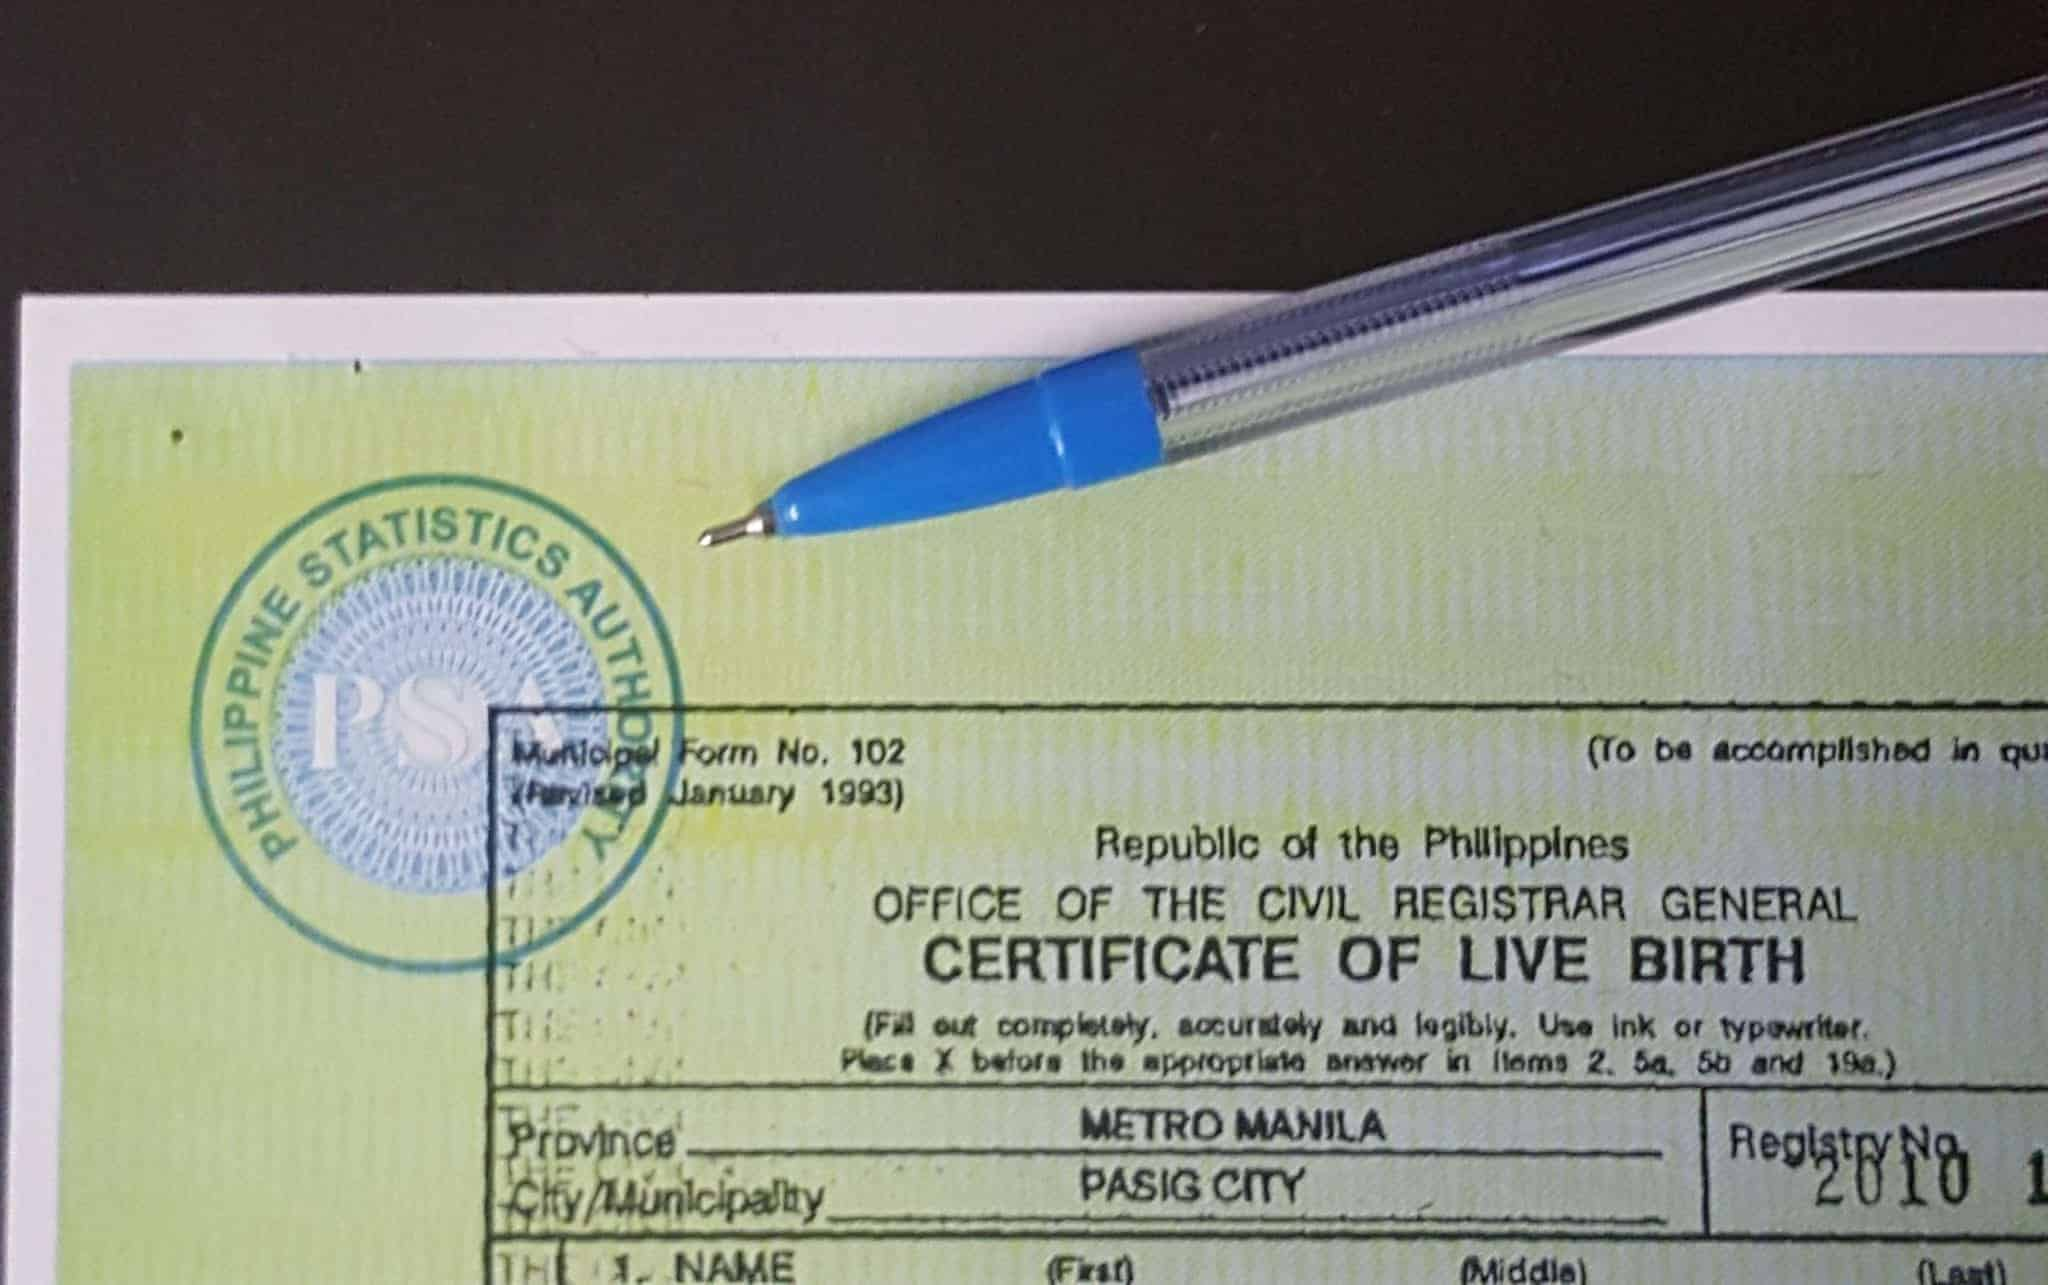 How to Correct Errors in Your Birth Certificate without Going to Court